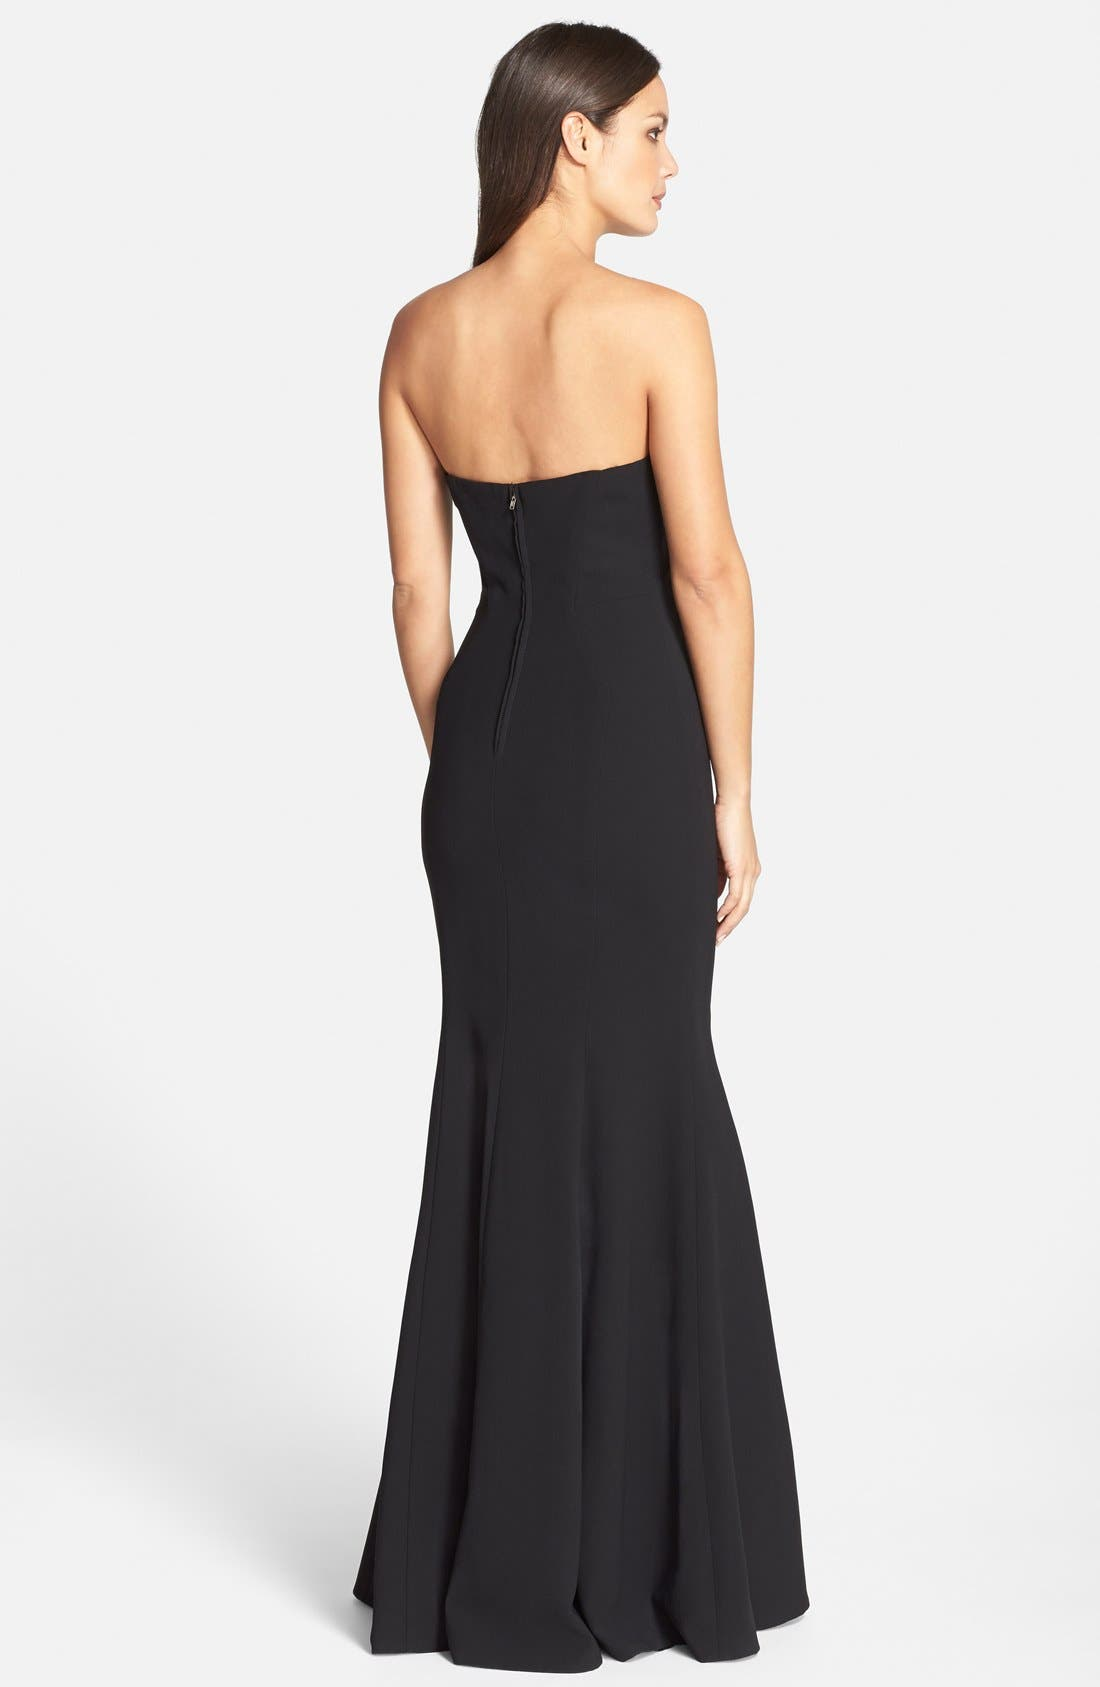 Notched Strapless Gown,                             Alternate thumbnail 2, color,                             001